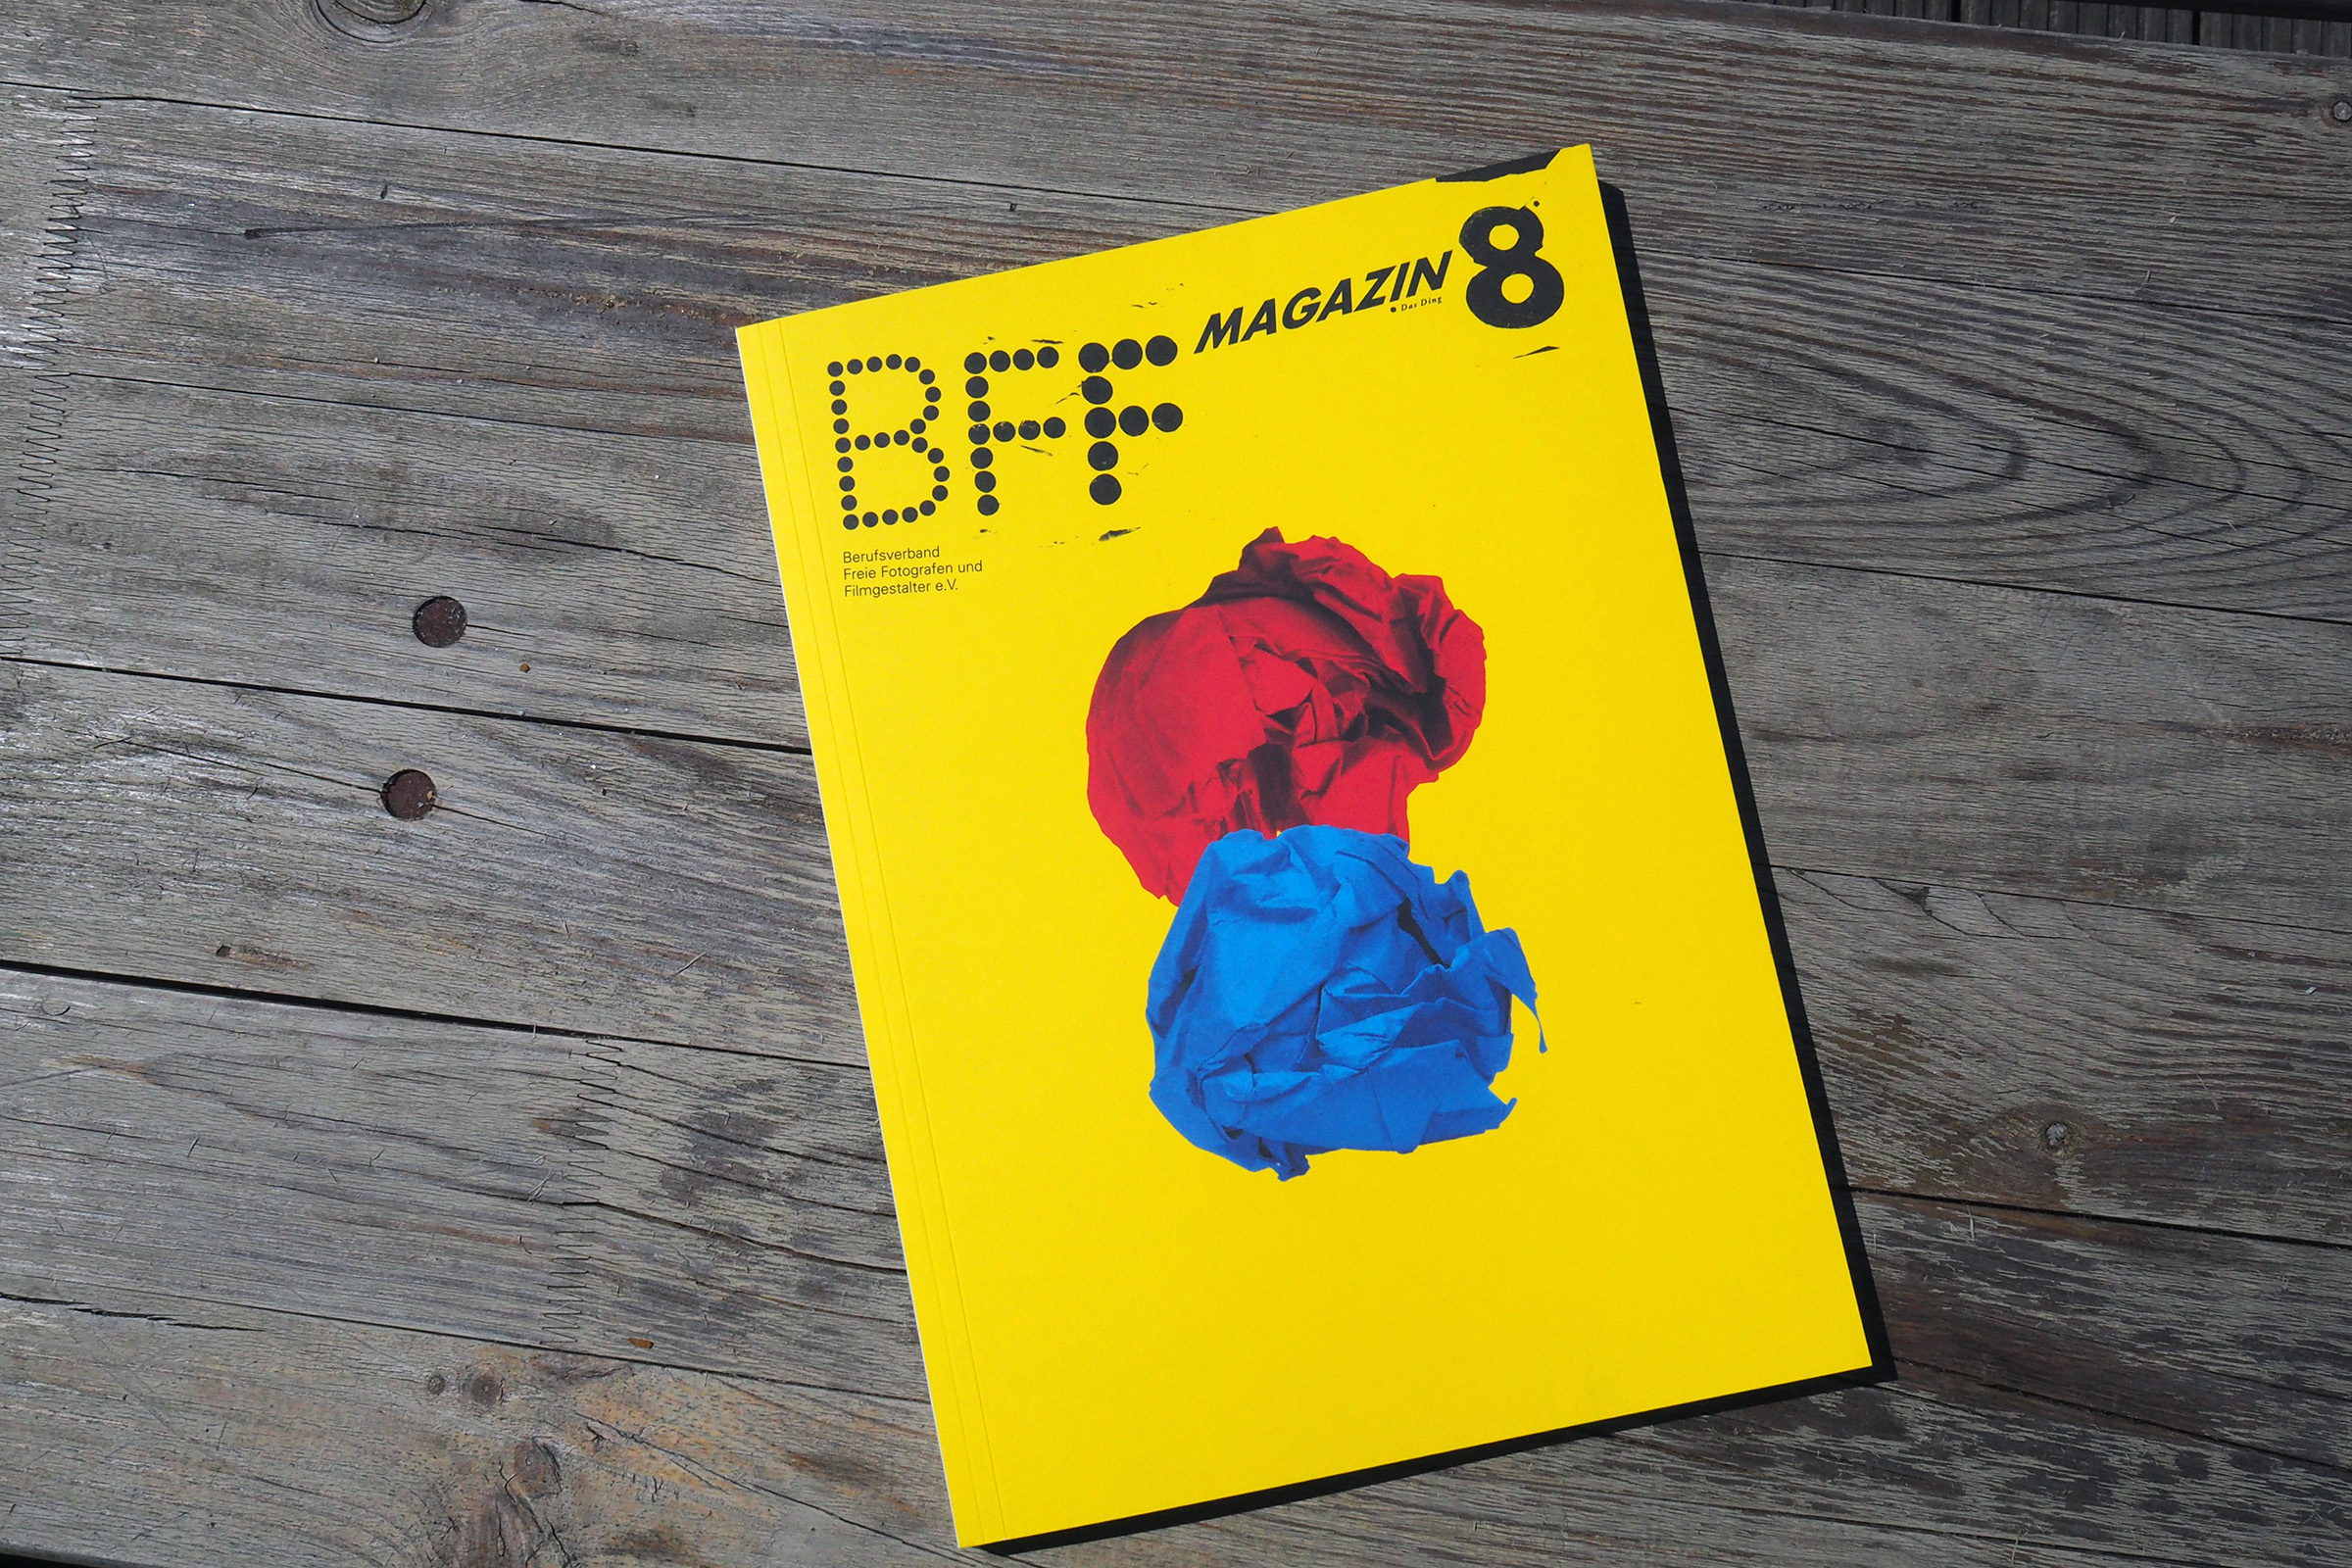 BFF Magazin Award bronze_04